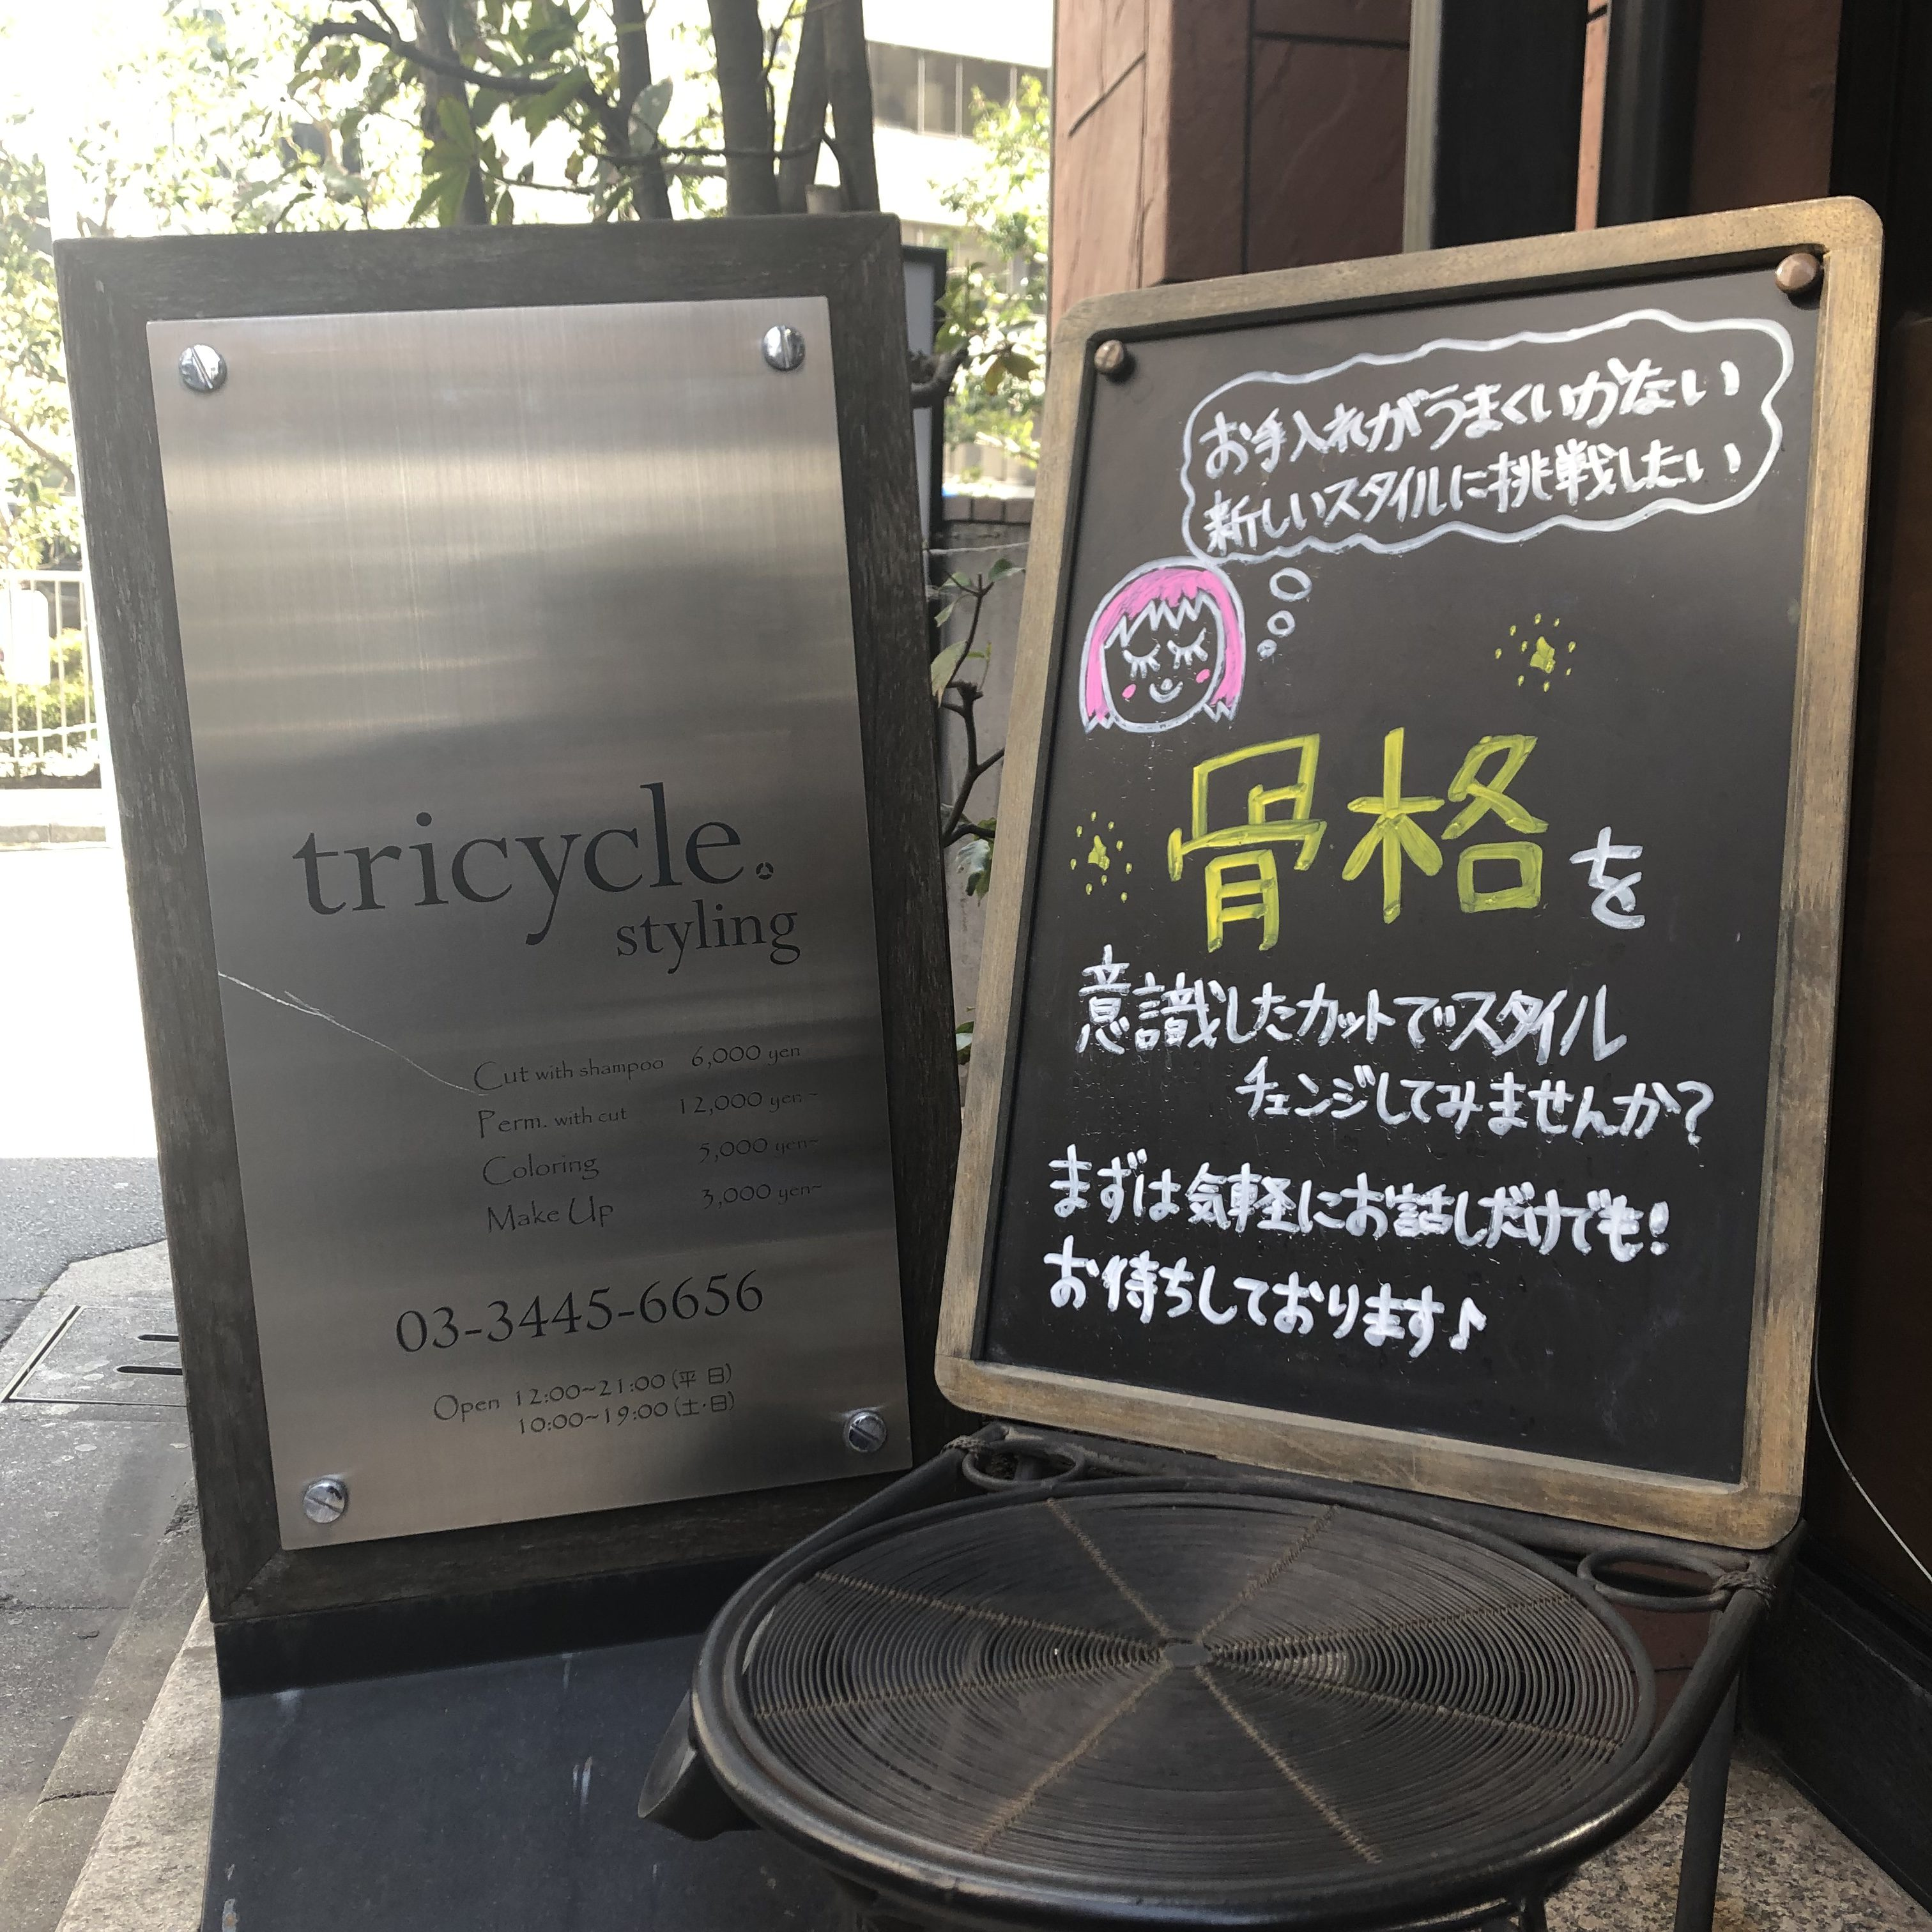 tricycle. 工作部